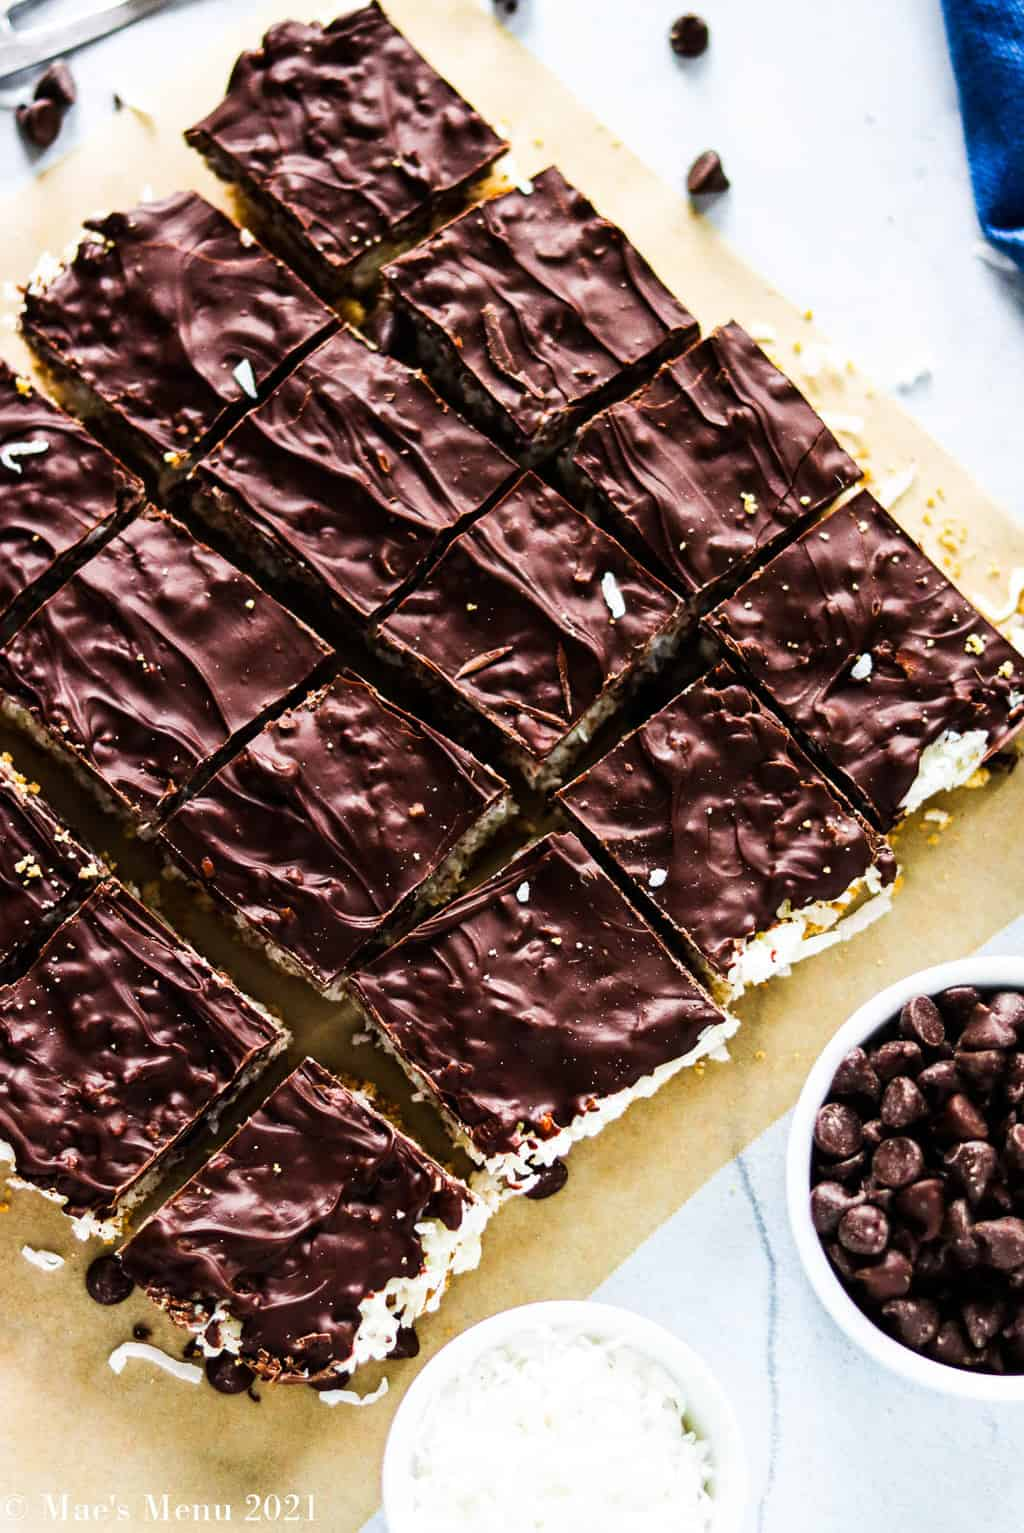 An overehead shot of chocolate coconut bars cut into pieces